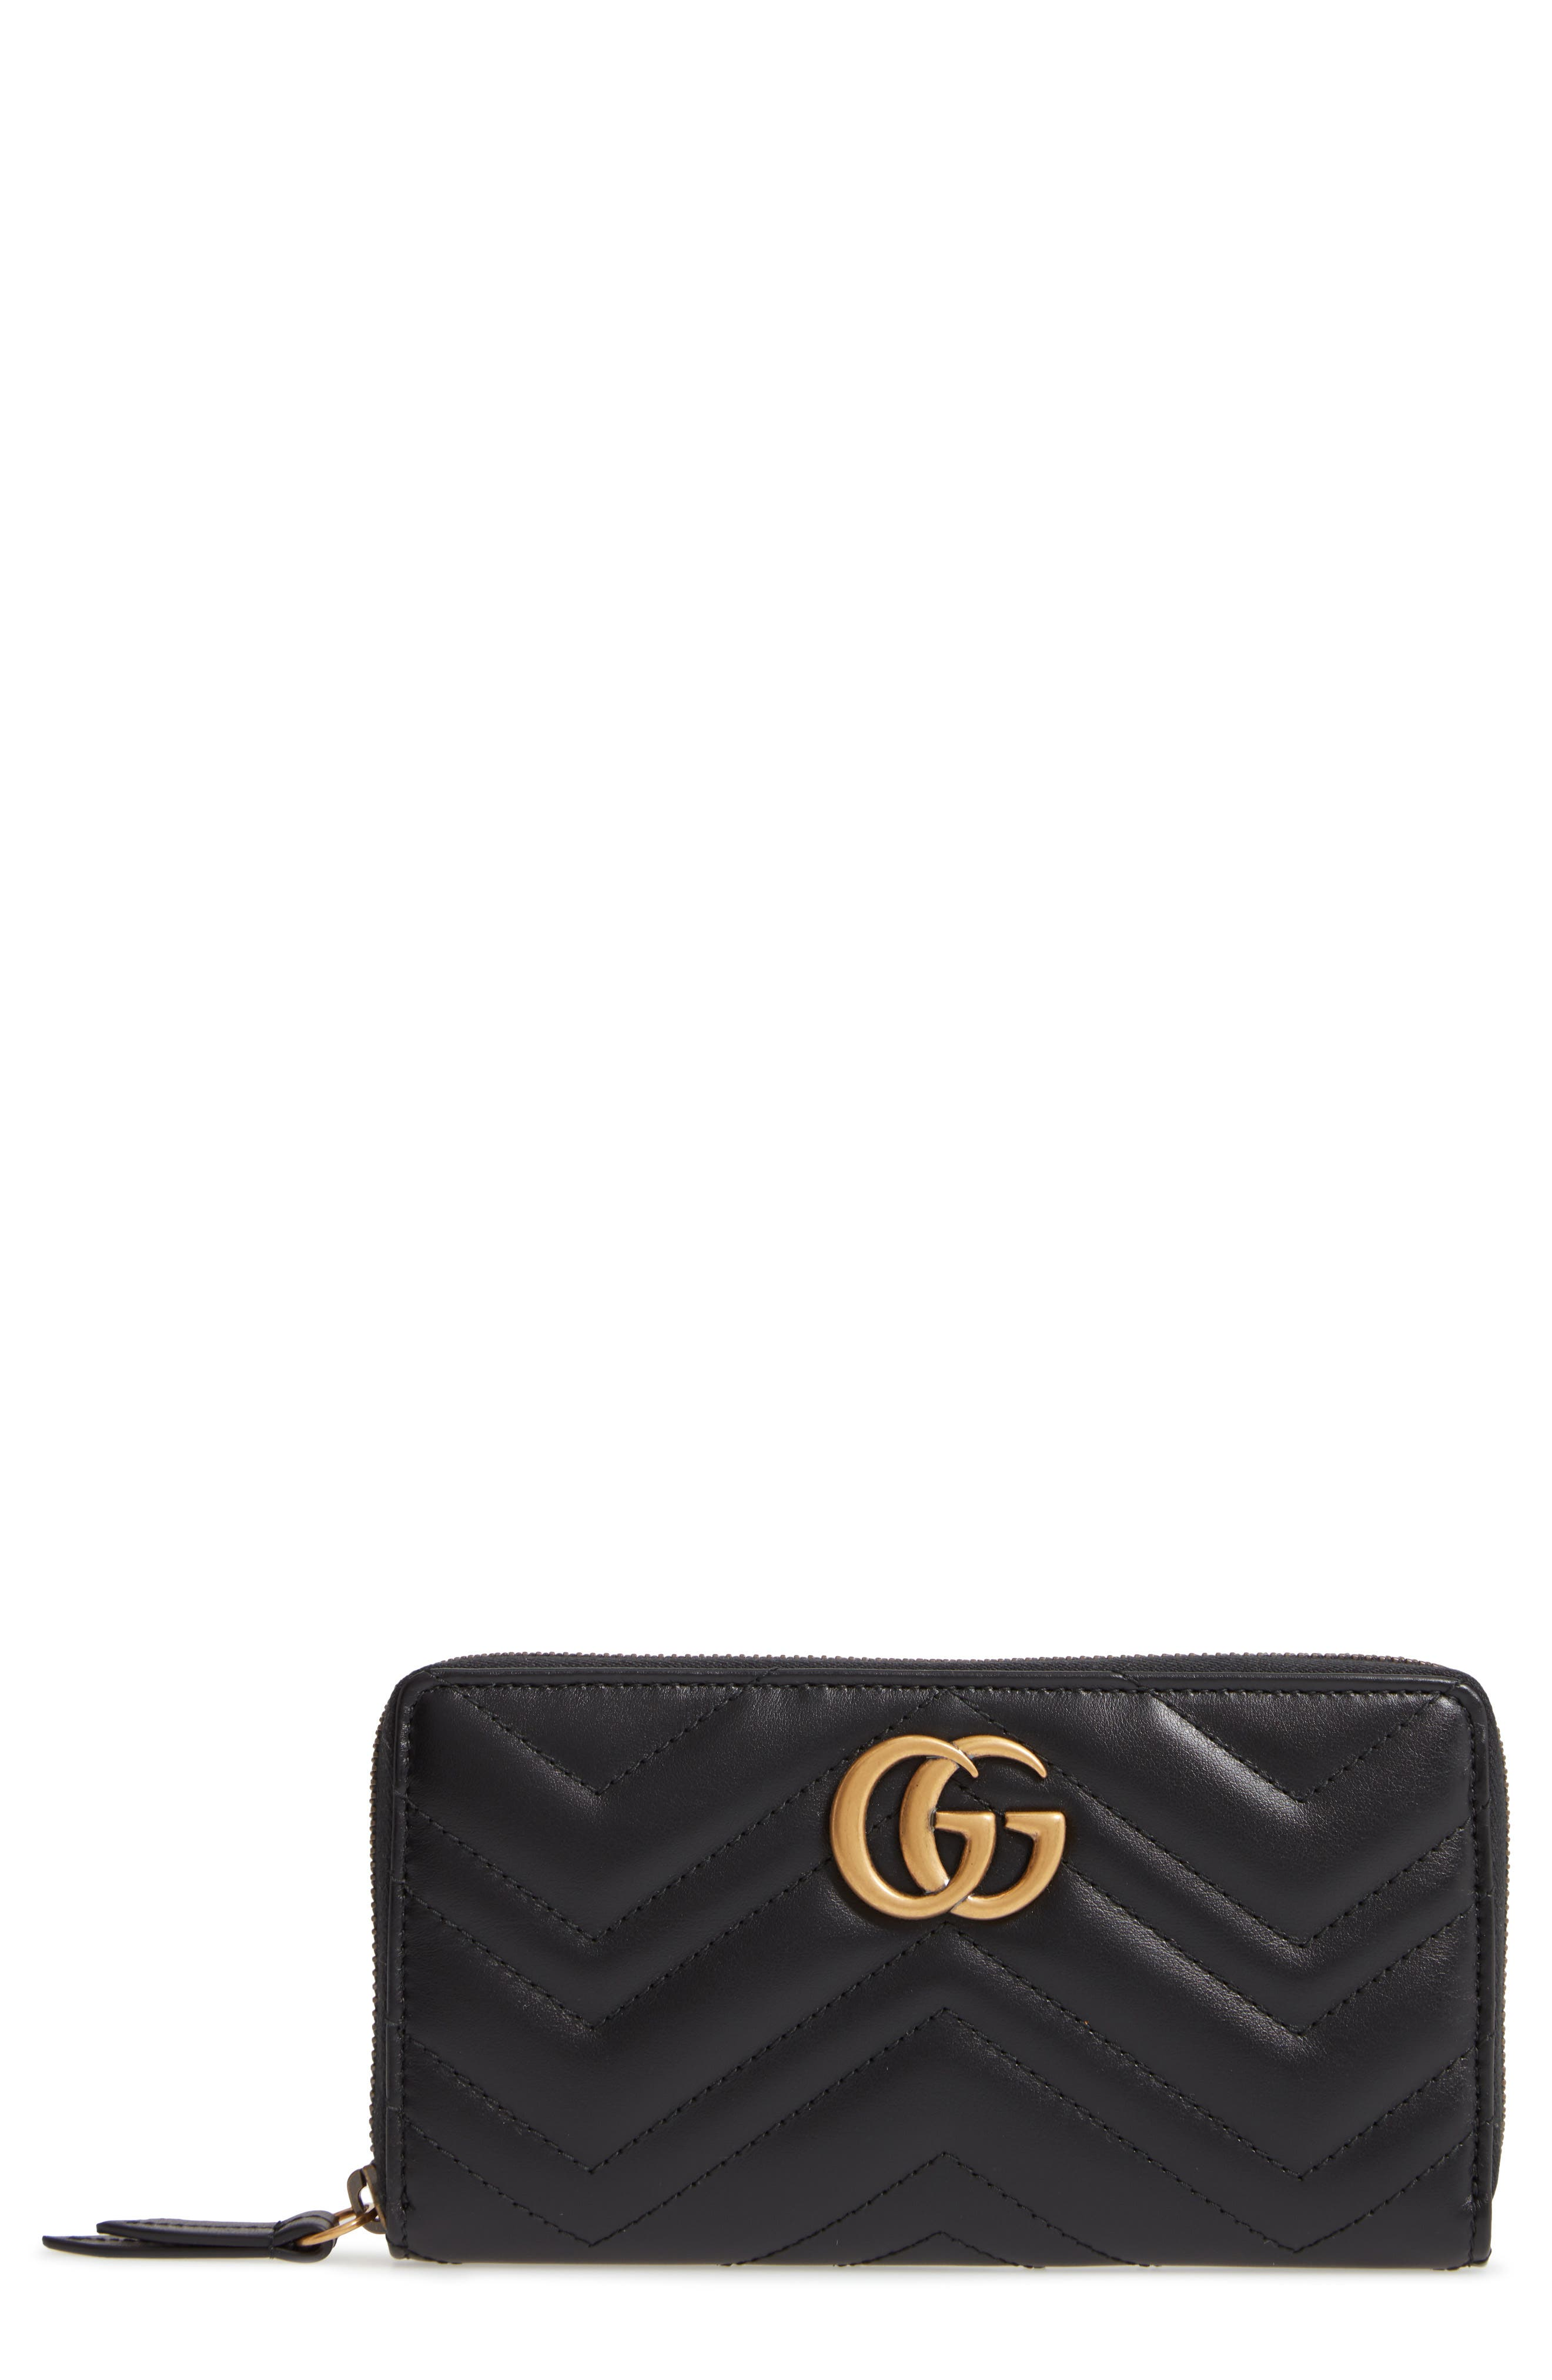 GUCCI,                             GG Marmont 2.0 Zip Around Wallet,                             Main thumbnail 1, color,                             NERO